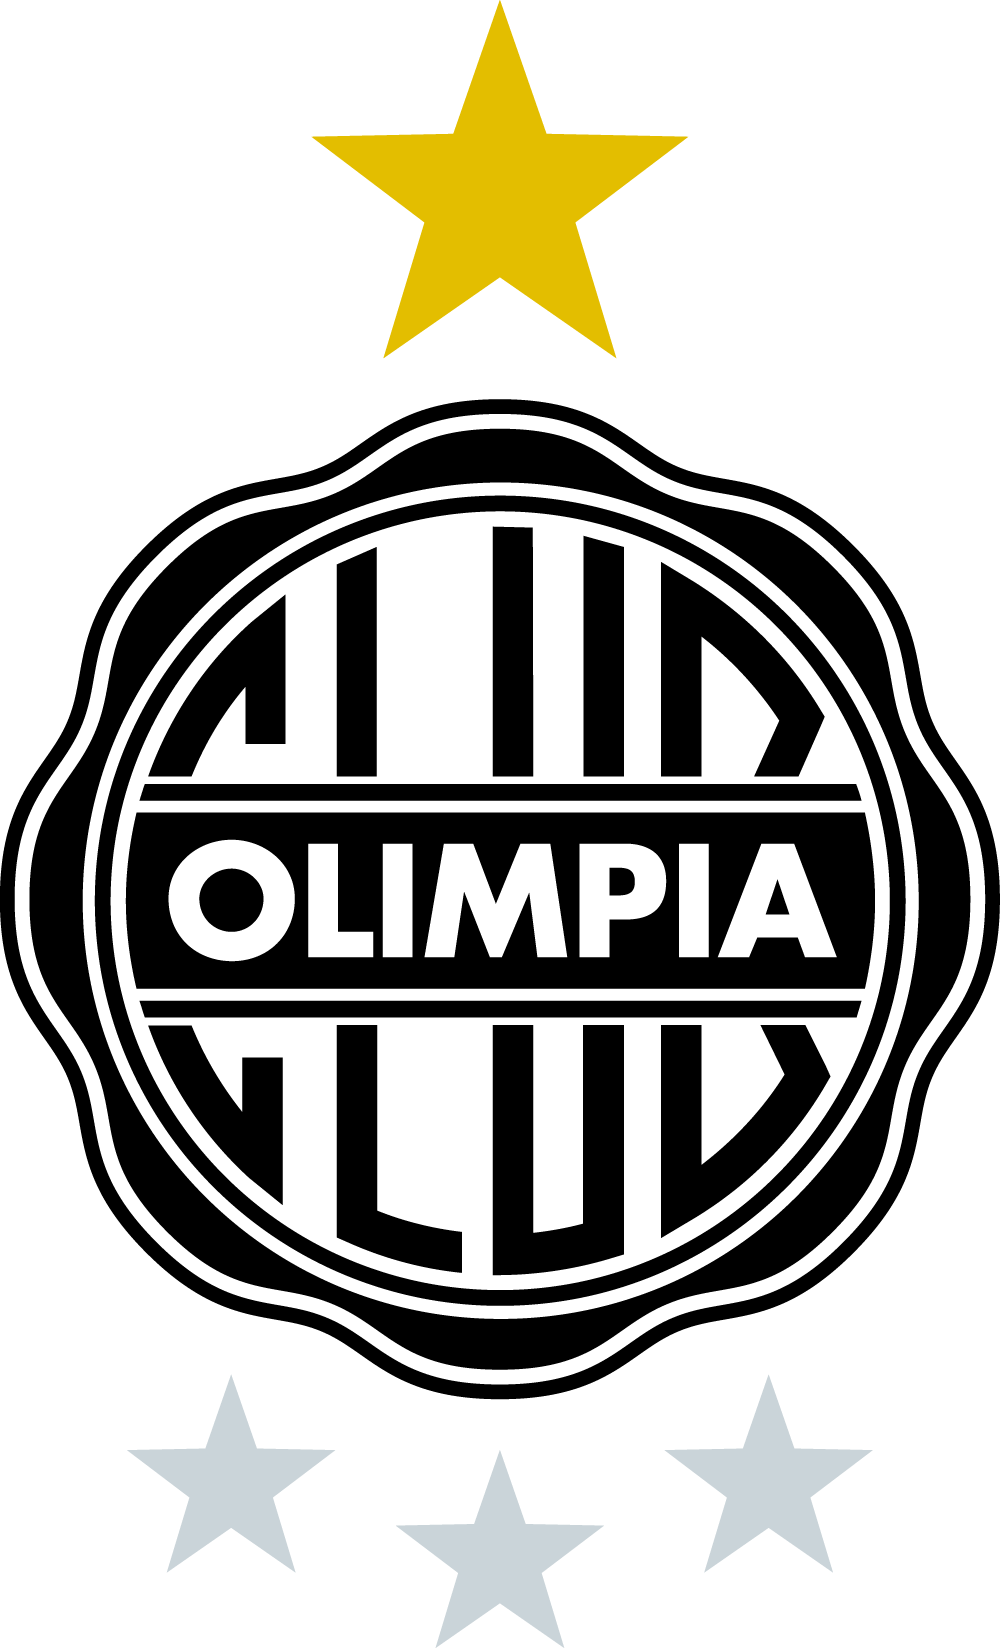 Club Olimpia Wallpapers - Wallpaper Cave